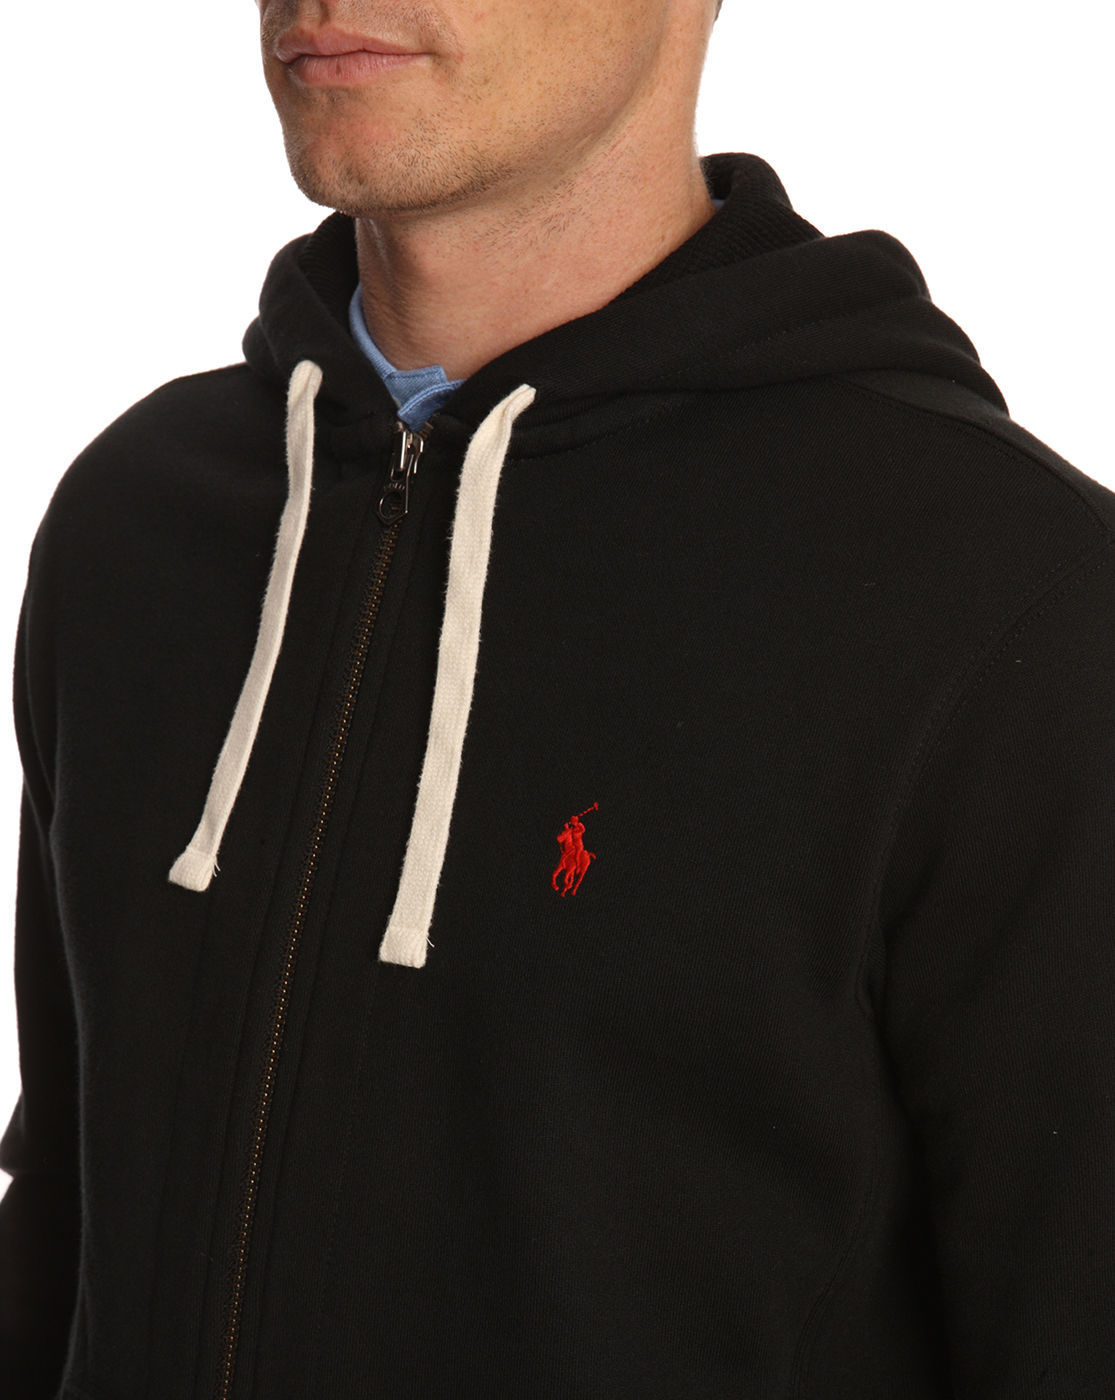 polo ralph lauren black zipped sweatshirt in black for men. Black Bedroom Furniture Sets. Home Design Ideas